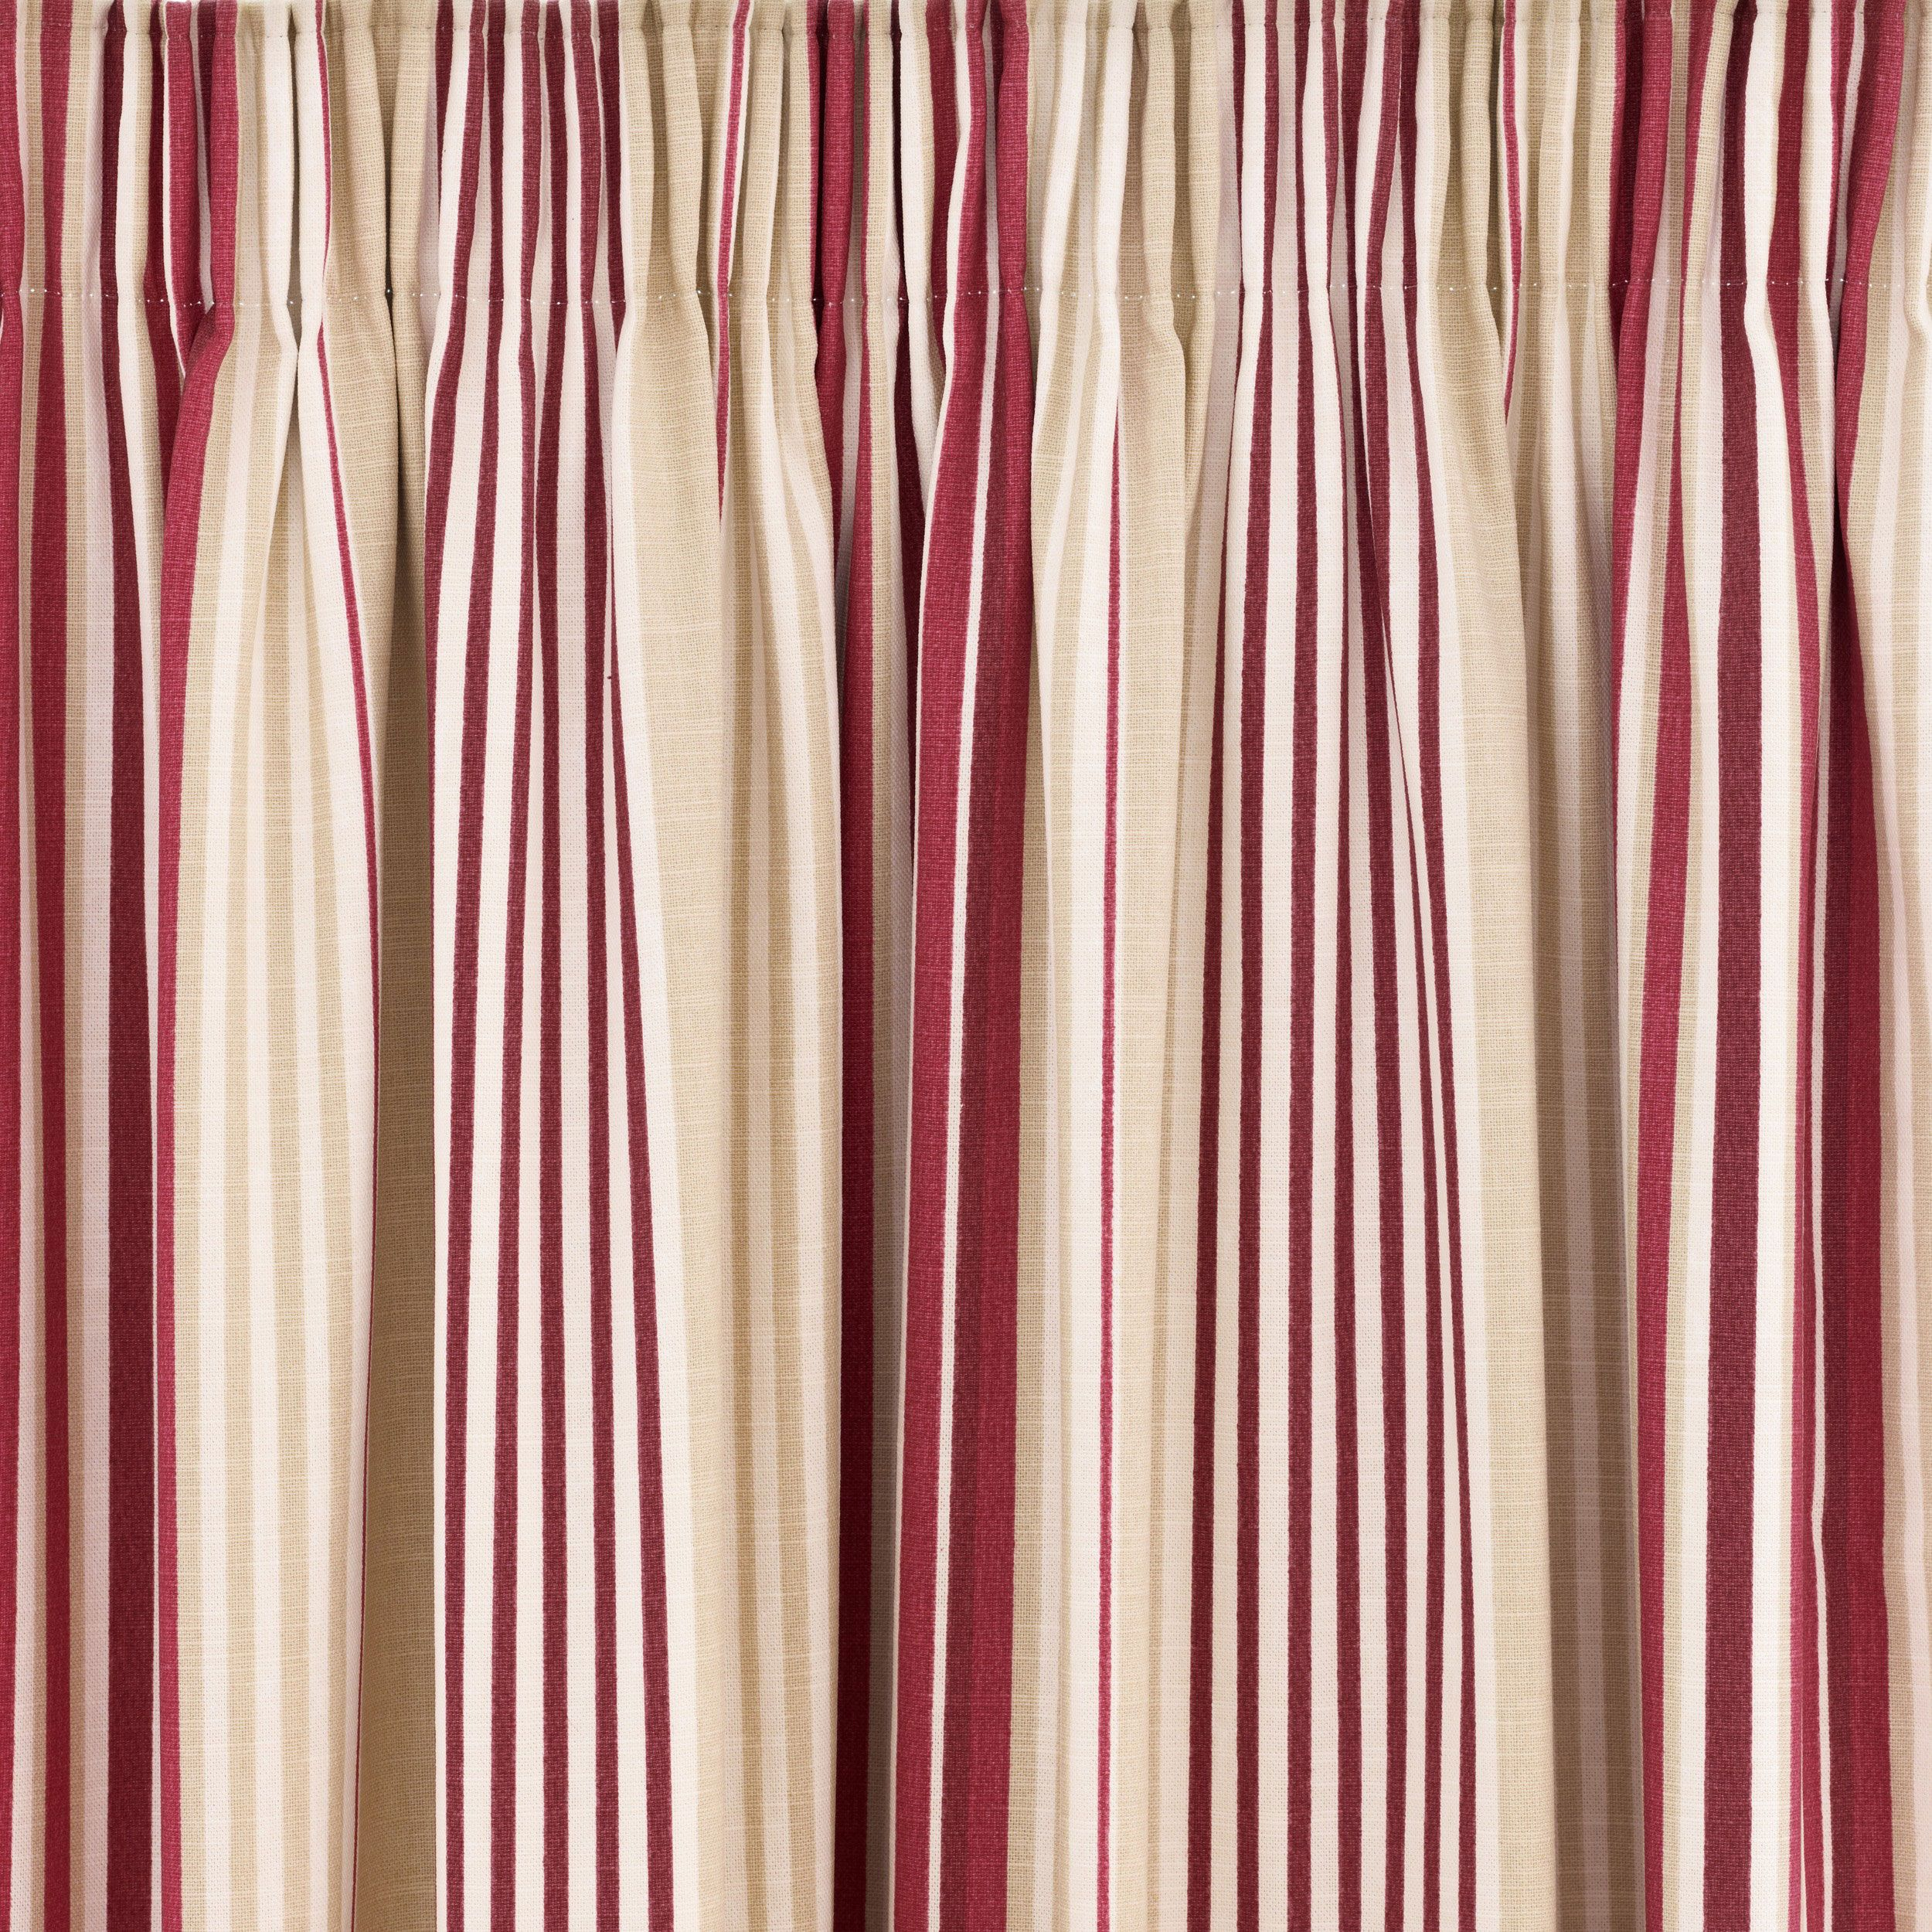 One Of The Ideal Fabrics For Tall Windows Pencil Pleat Curtains Bedroom Furnishings